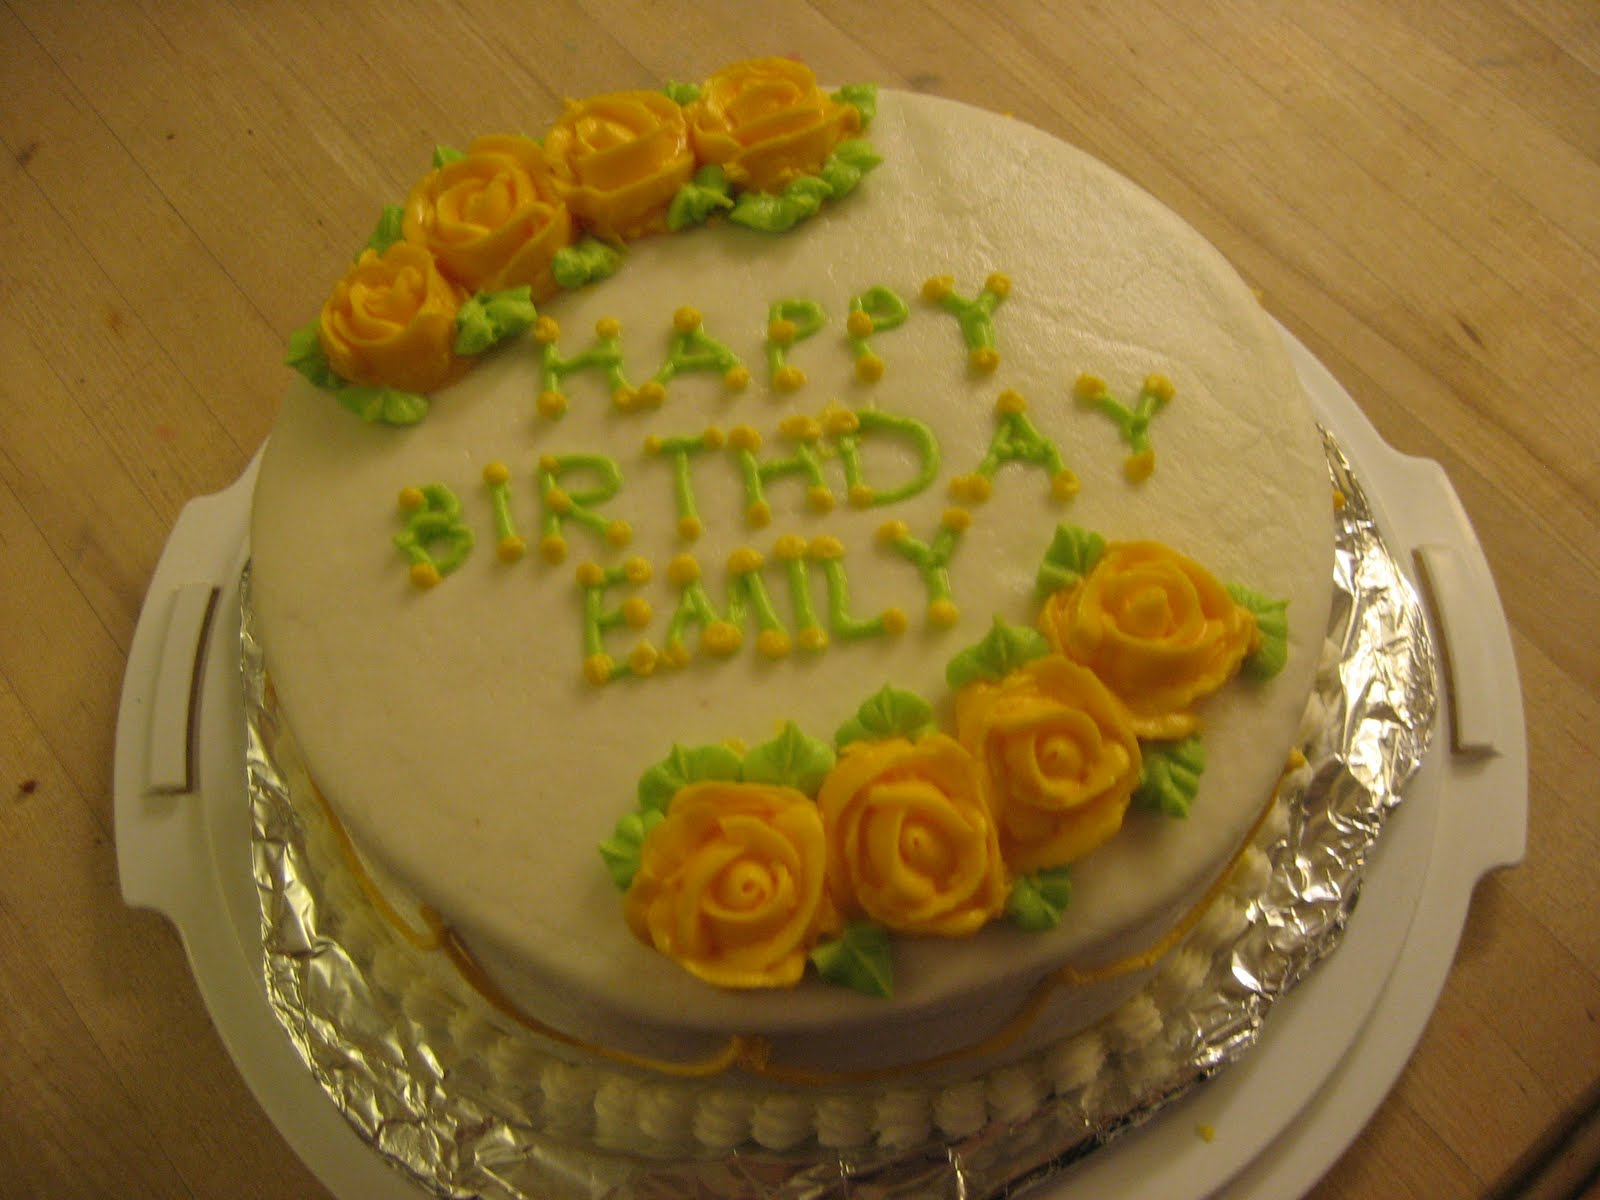 The Pastry Chef: Happy Birthday Emily